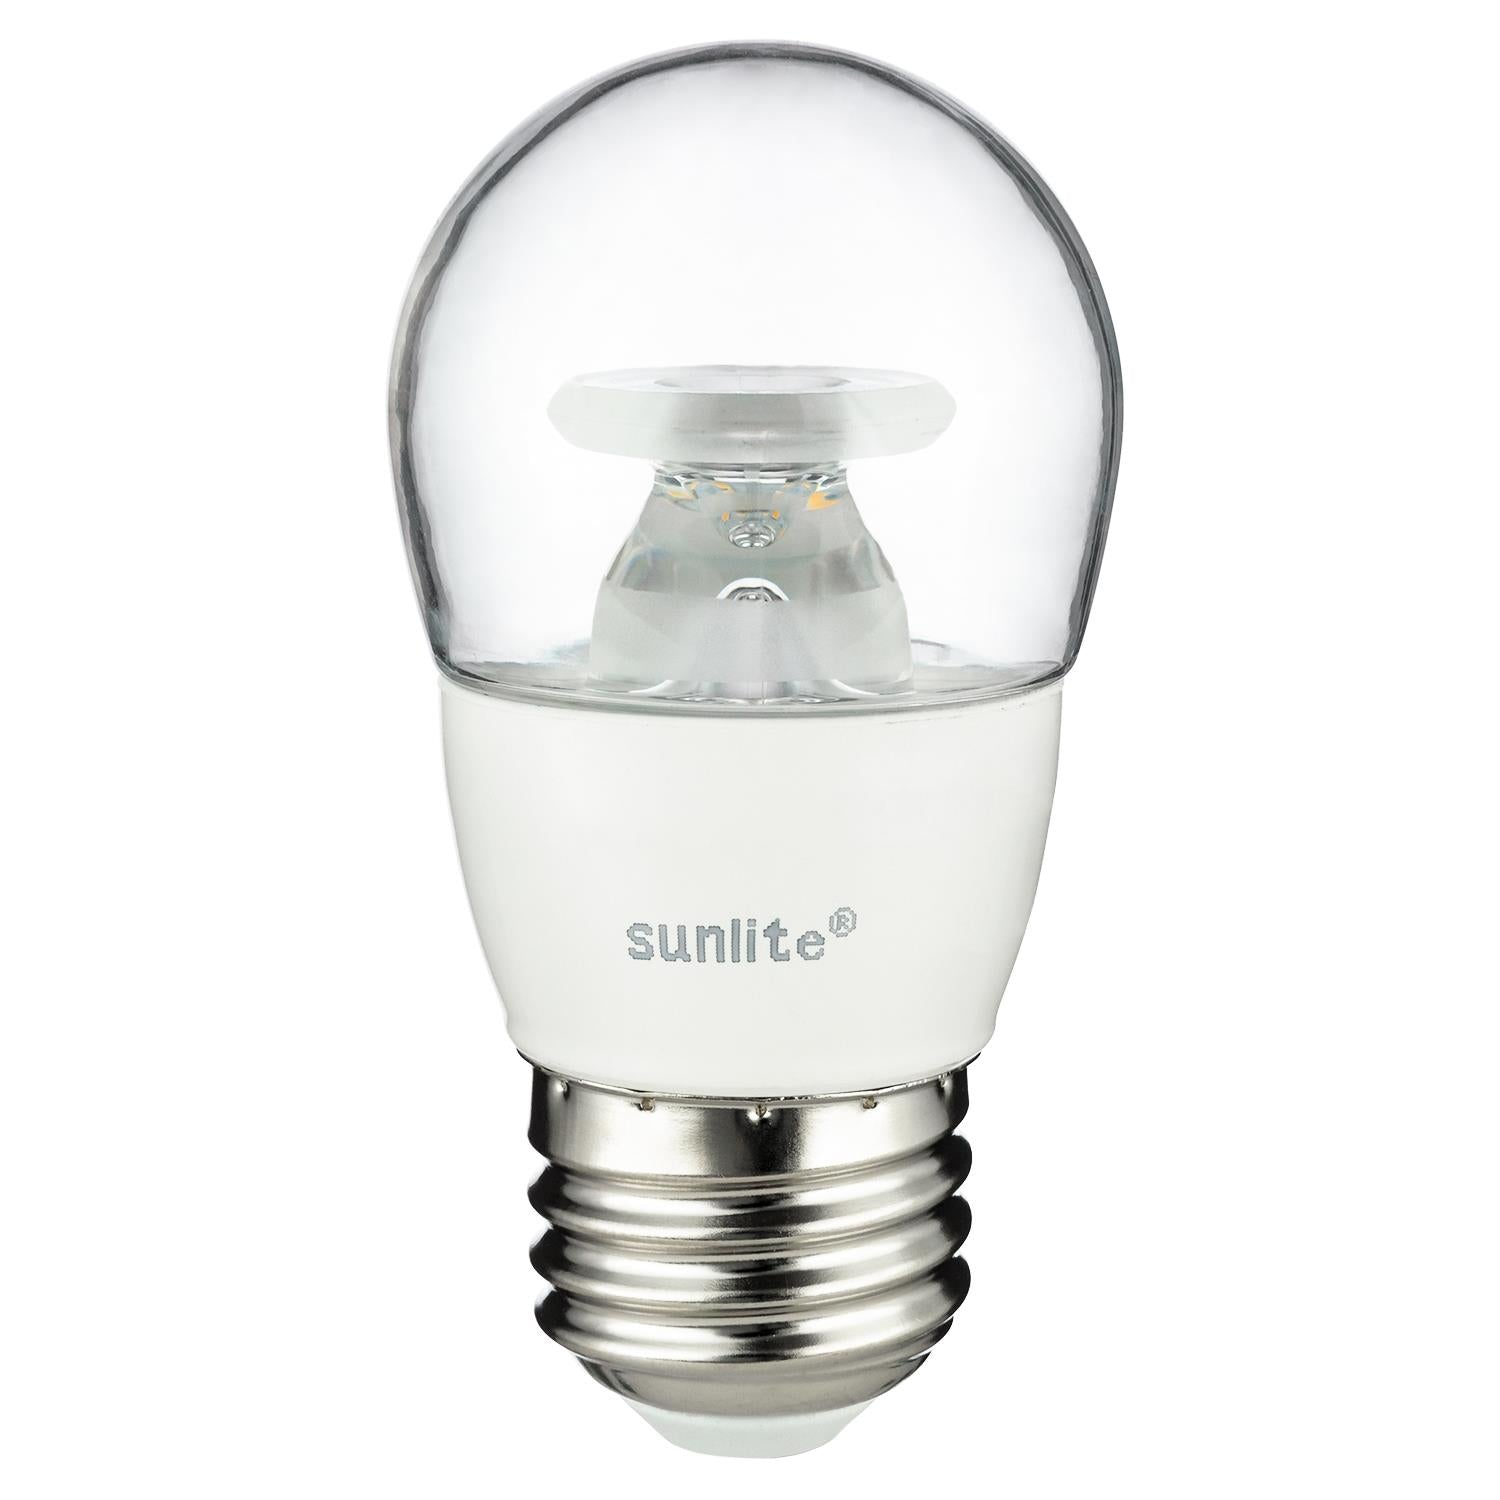 SUNLITE 80134-SU LED A15 Appliance 4.5w Light Bulb Warm White 3000K